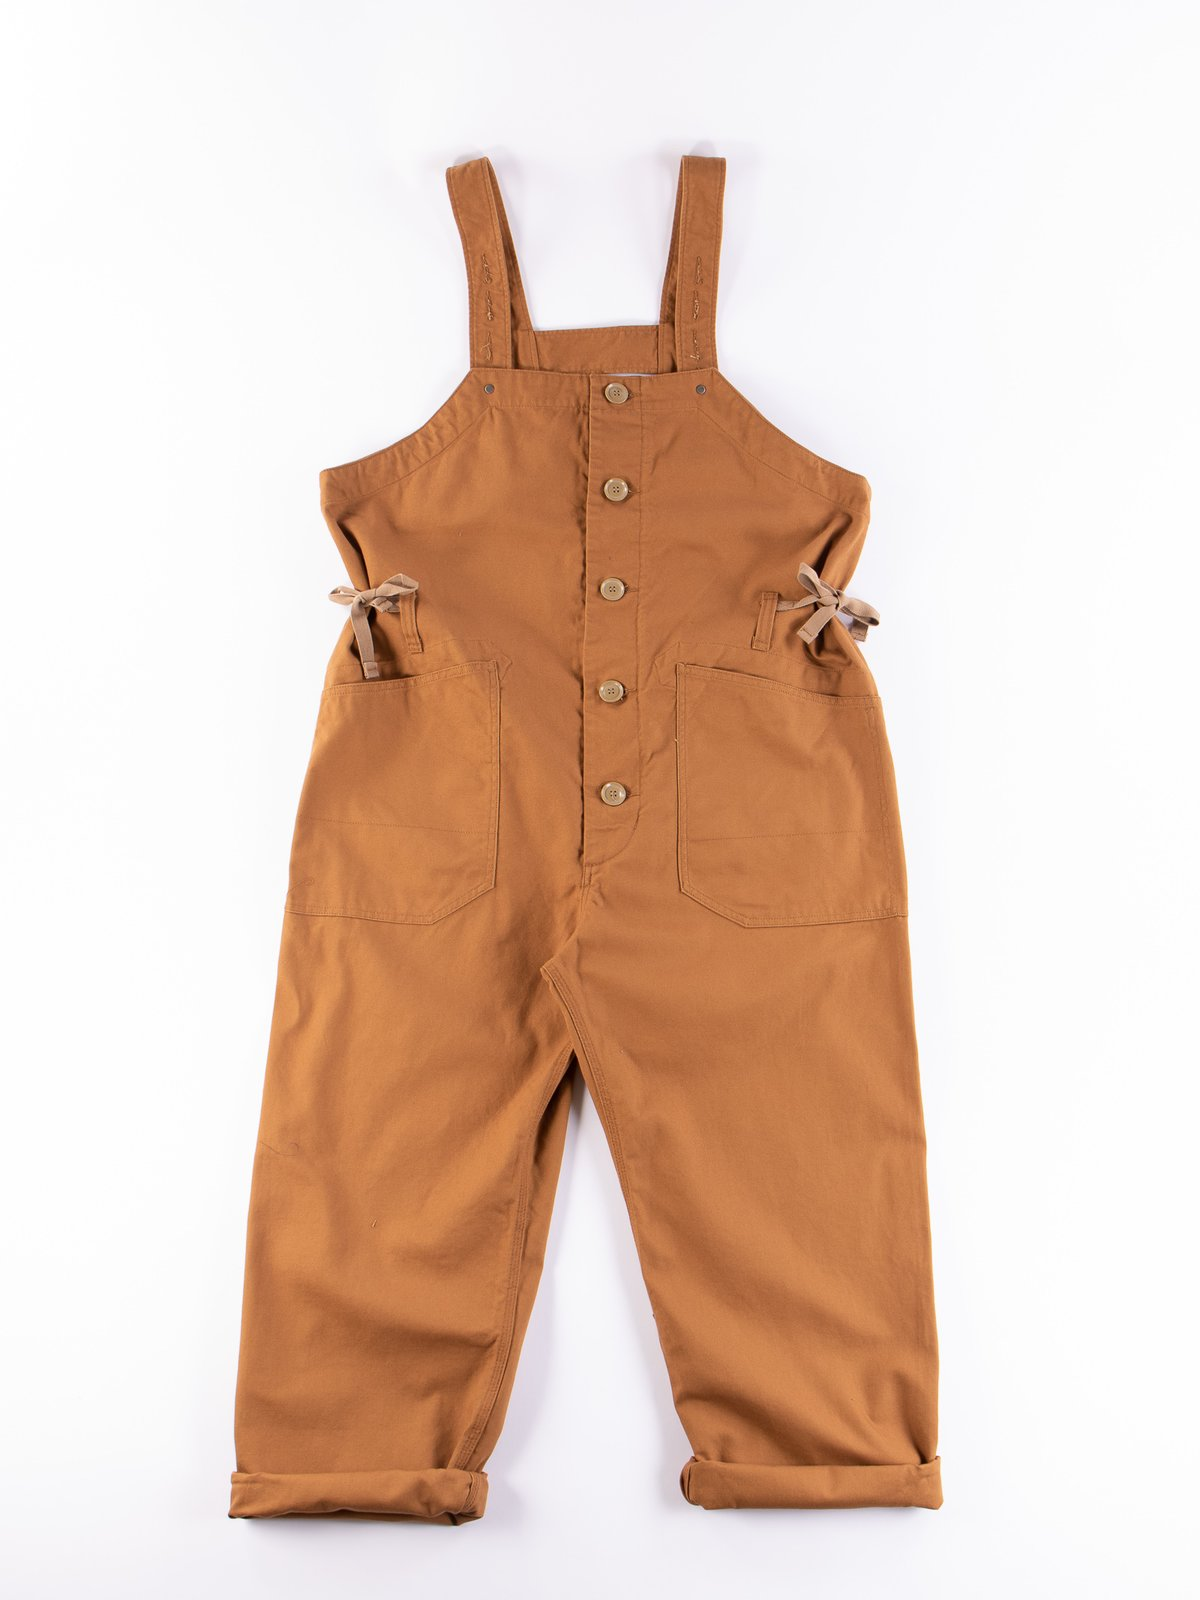 Brown 12oz Duck Canvas Waders - Image 1